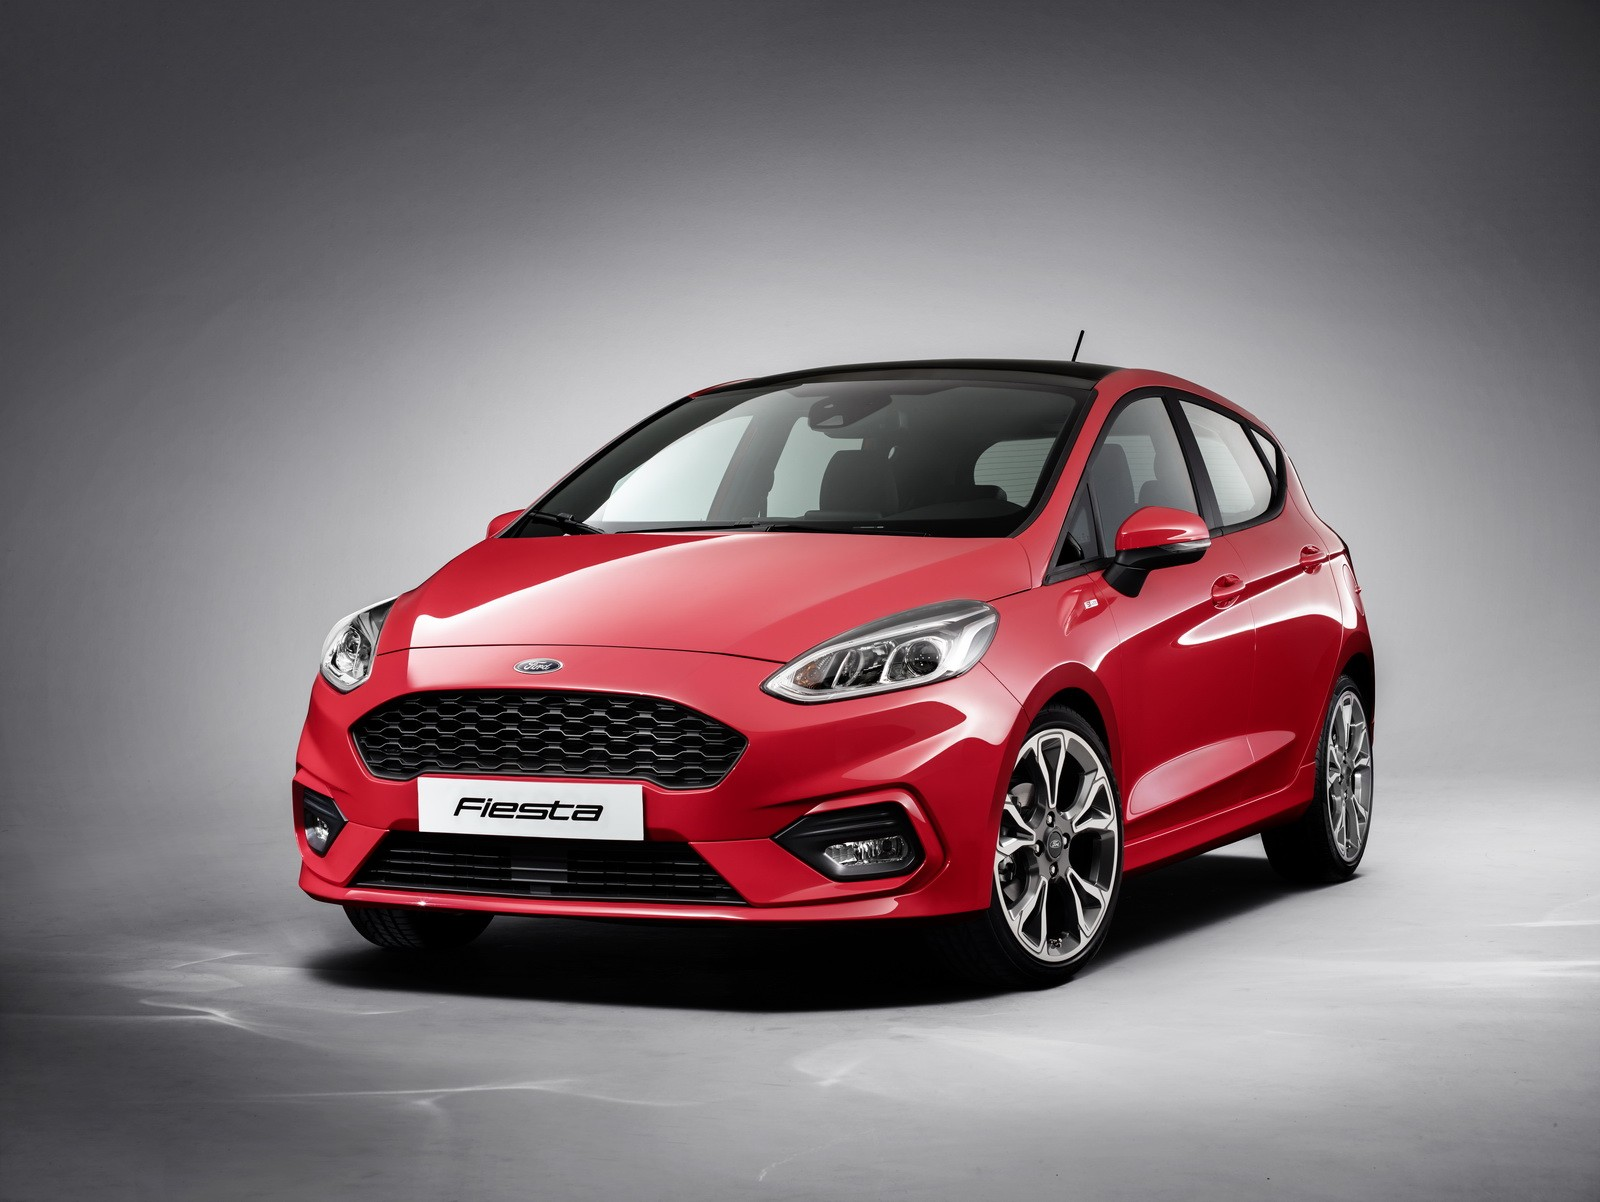 2018 ford fiesta st hot hatch confirmed with fwd driving modes fun handling autoevolution. Black Bedroom Furniture Sets. Home Design Ideas